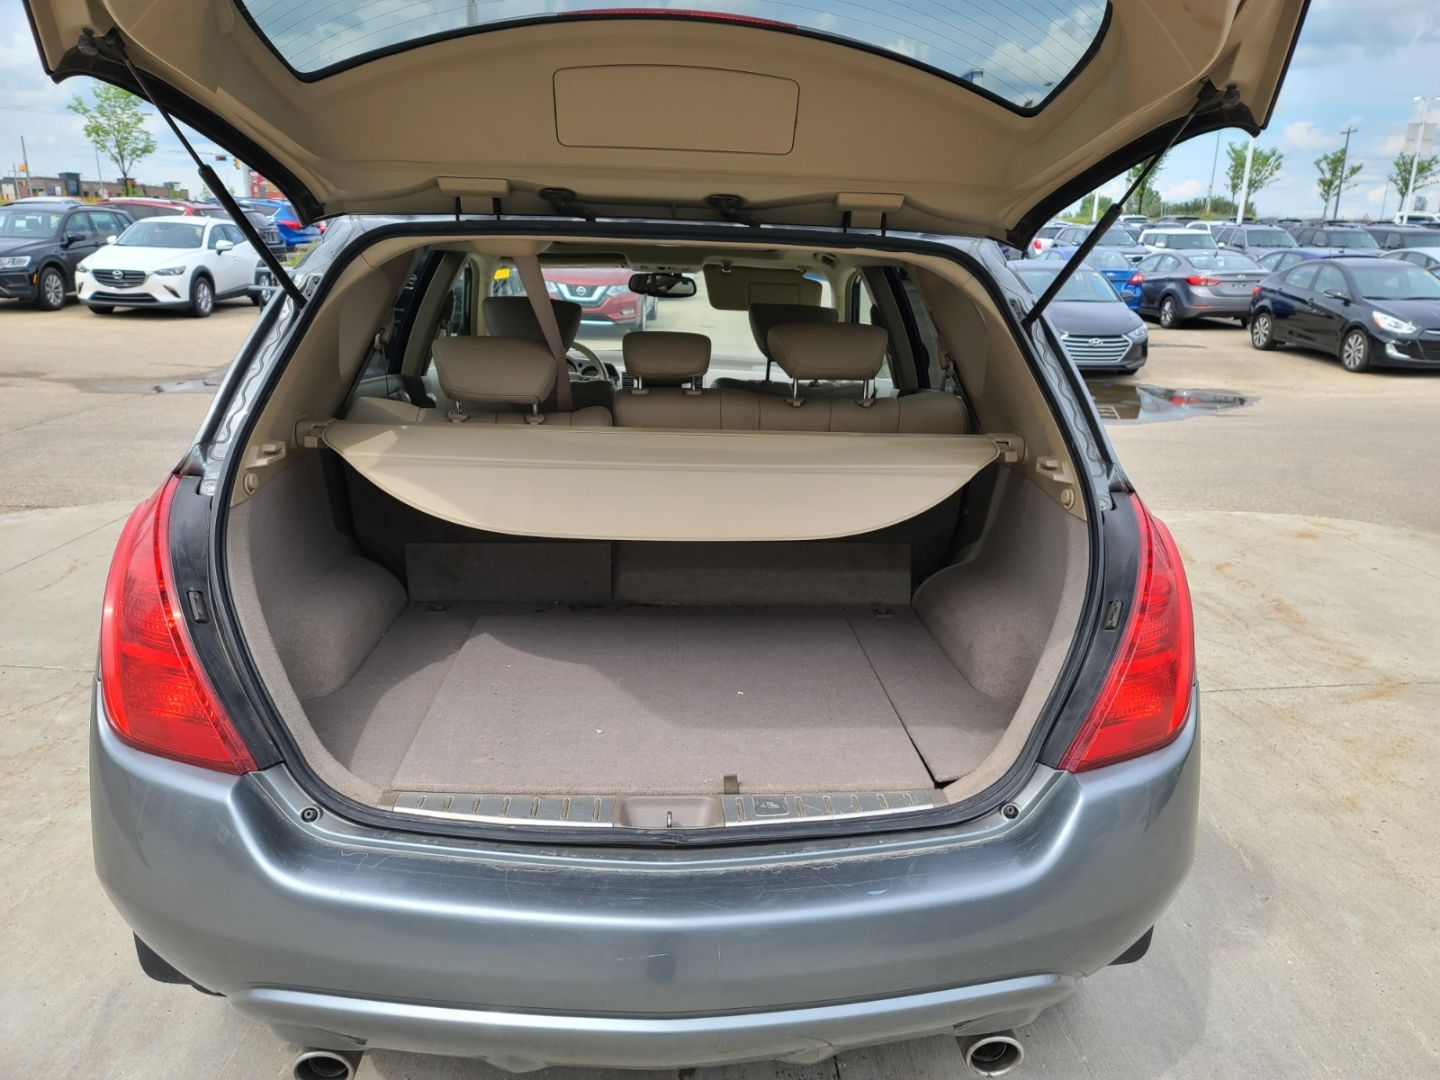 2005 Nissan Murano SE for sale in Edmonton, Alberta